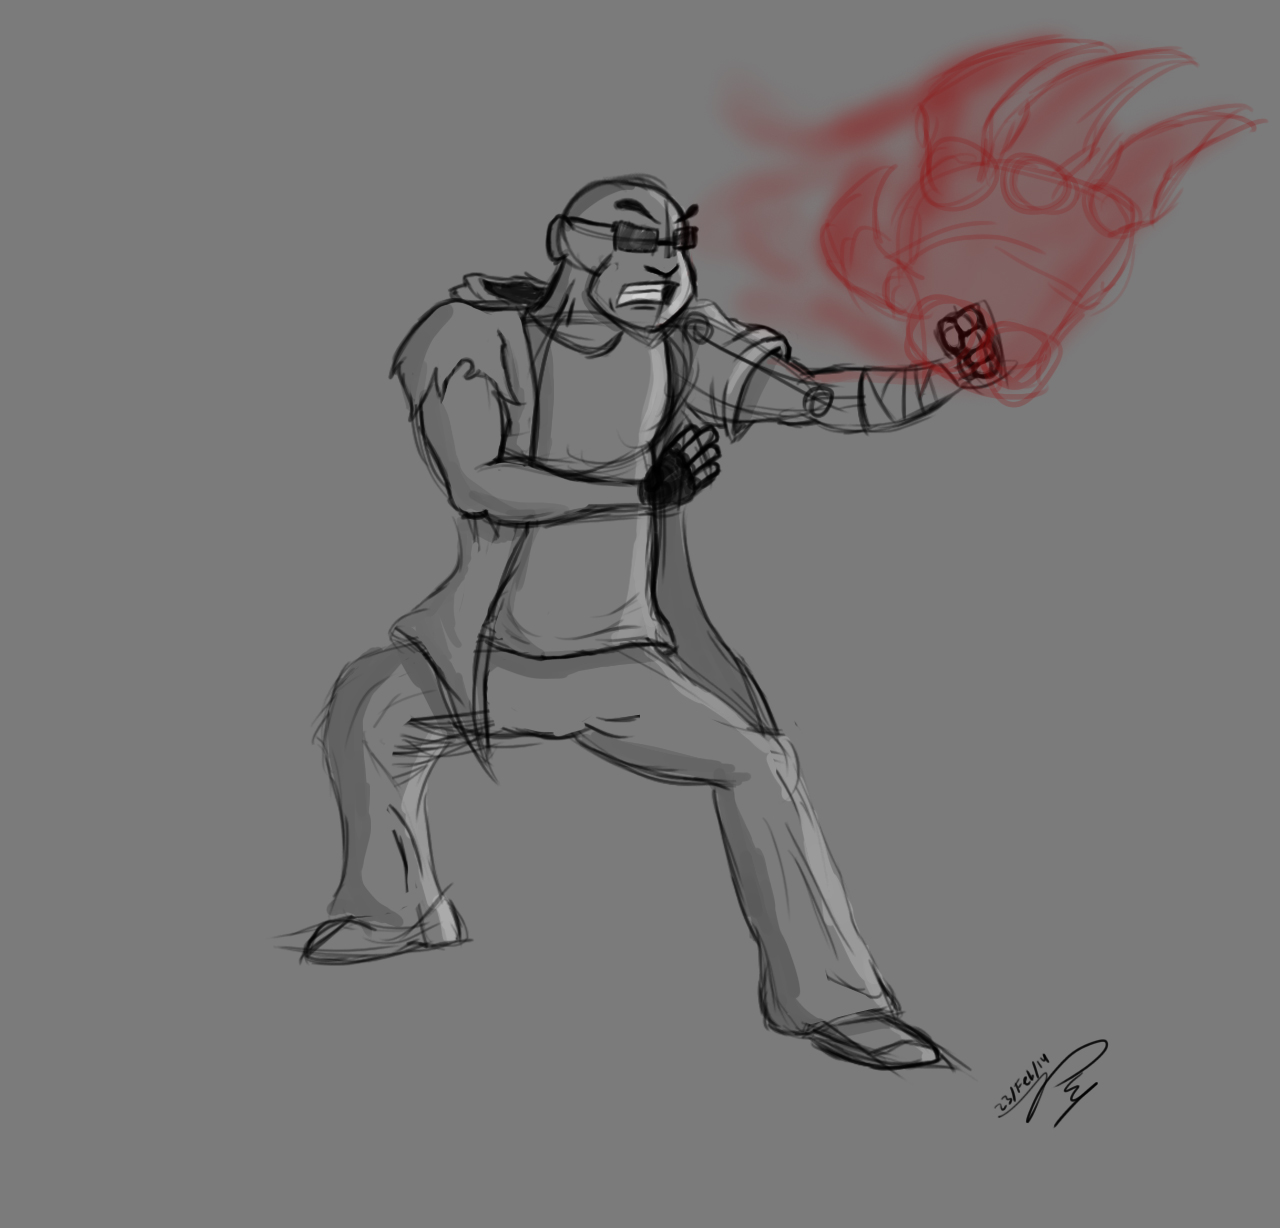 The Guy with the Oni Hands